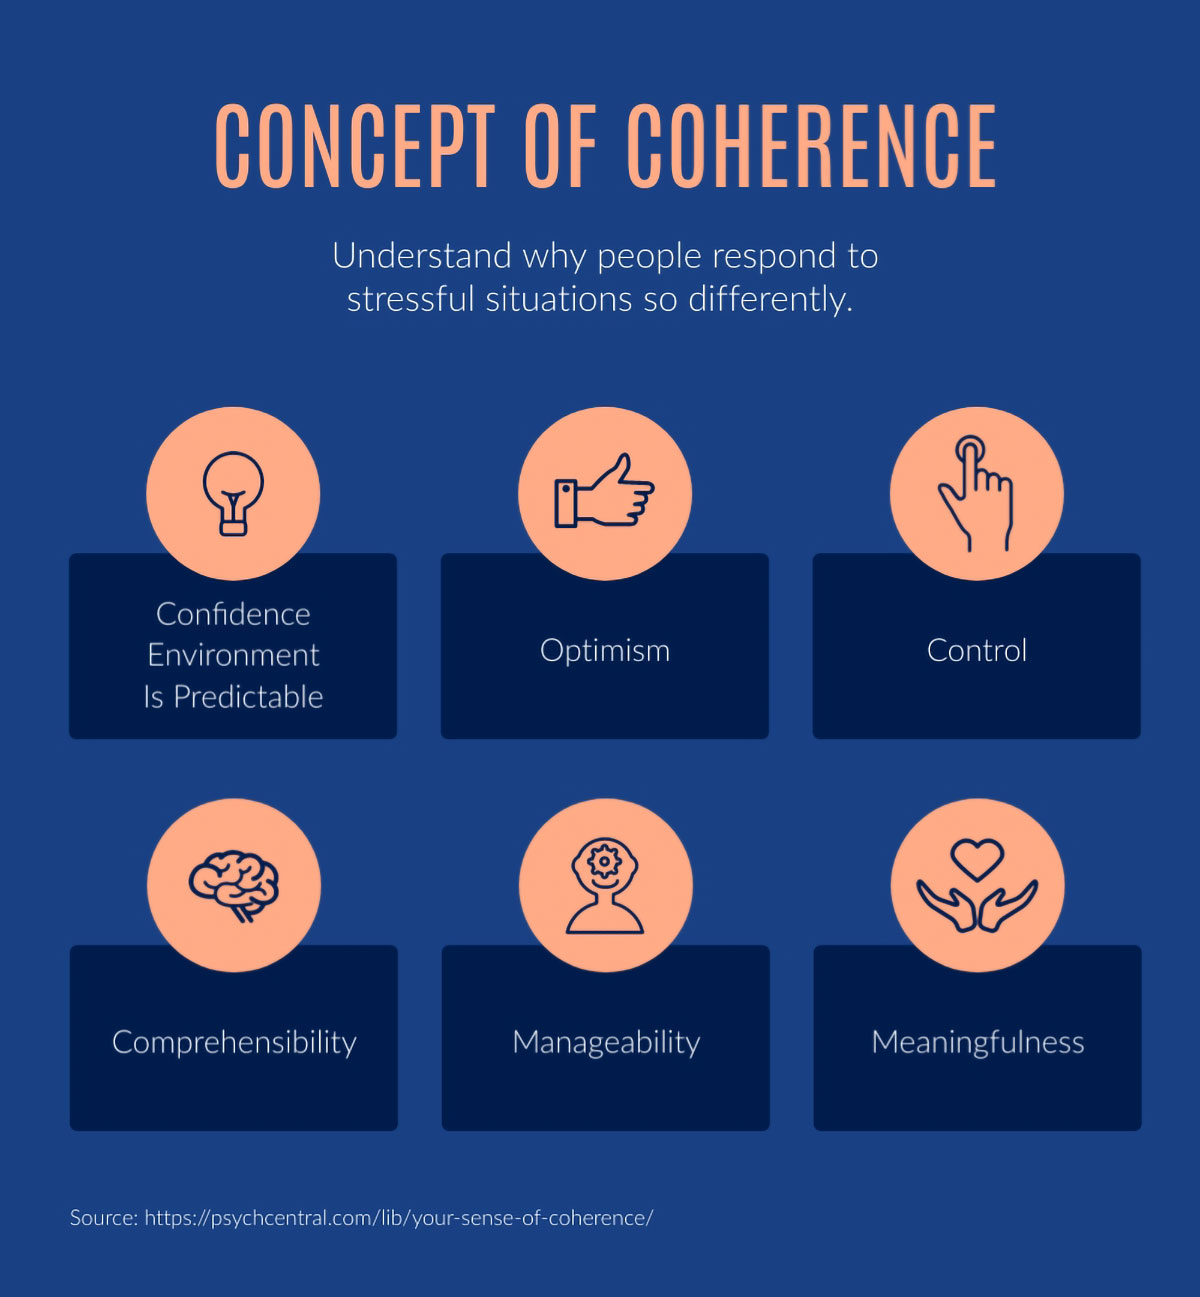 visual communication - concept of coherence